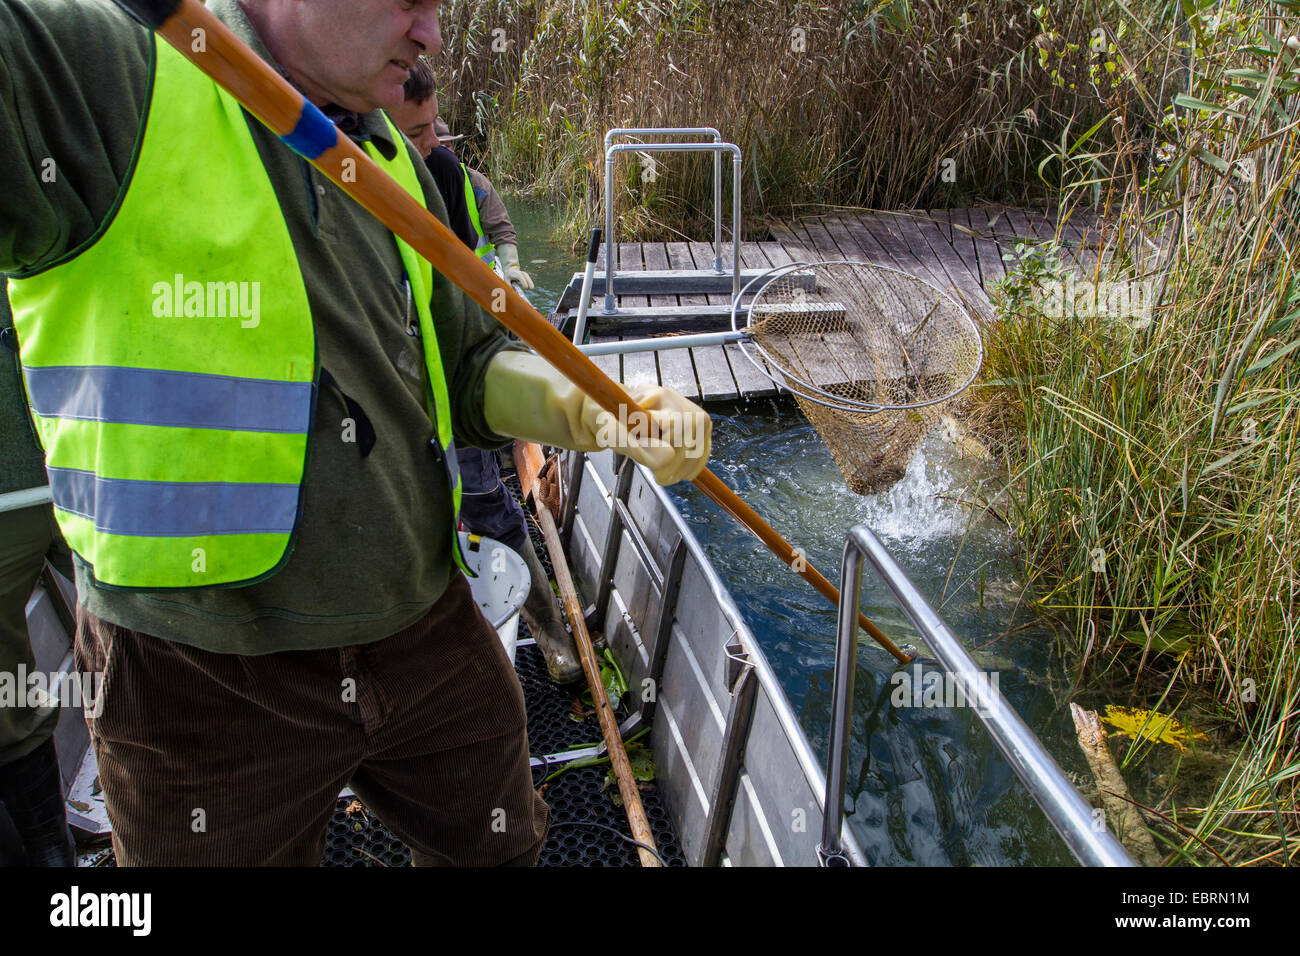 electrofishing at a lake shore for population control, Germany - Stock Image